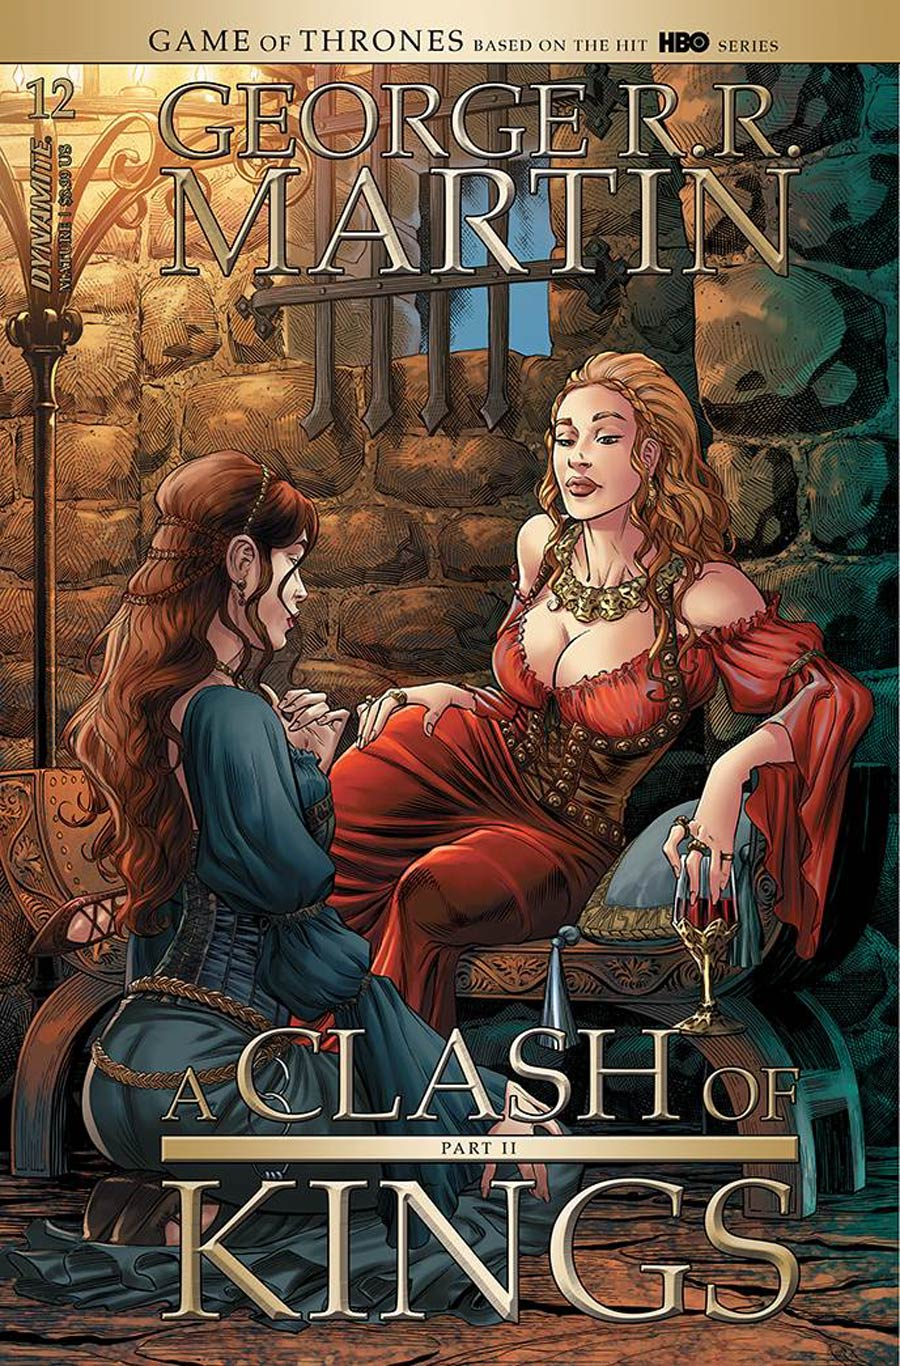 Game Of Thrones Clash Of Kings Vol 2 #12 Cover A Regular Mike Miller Cover